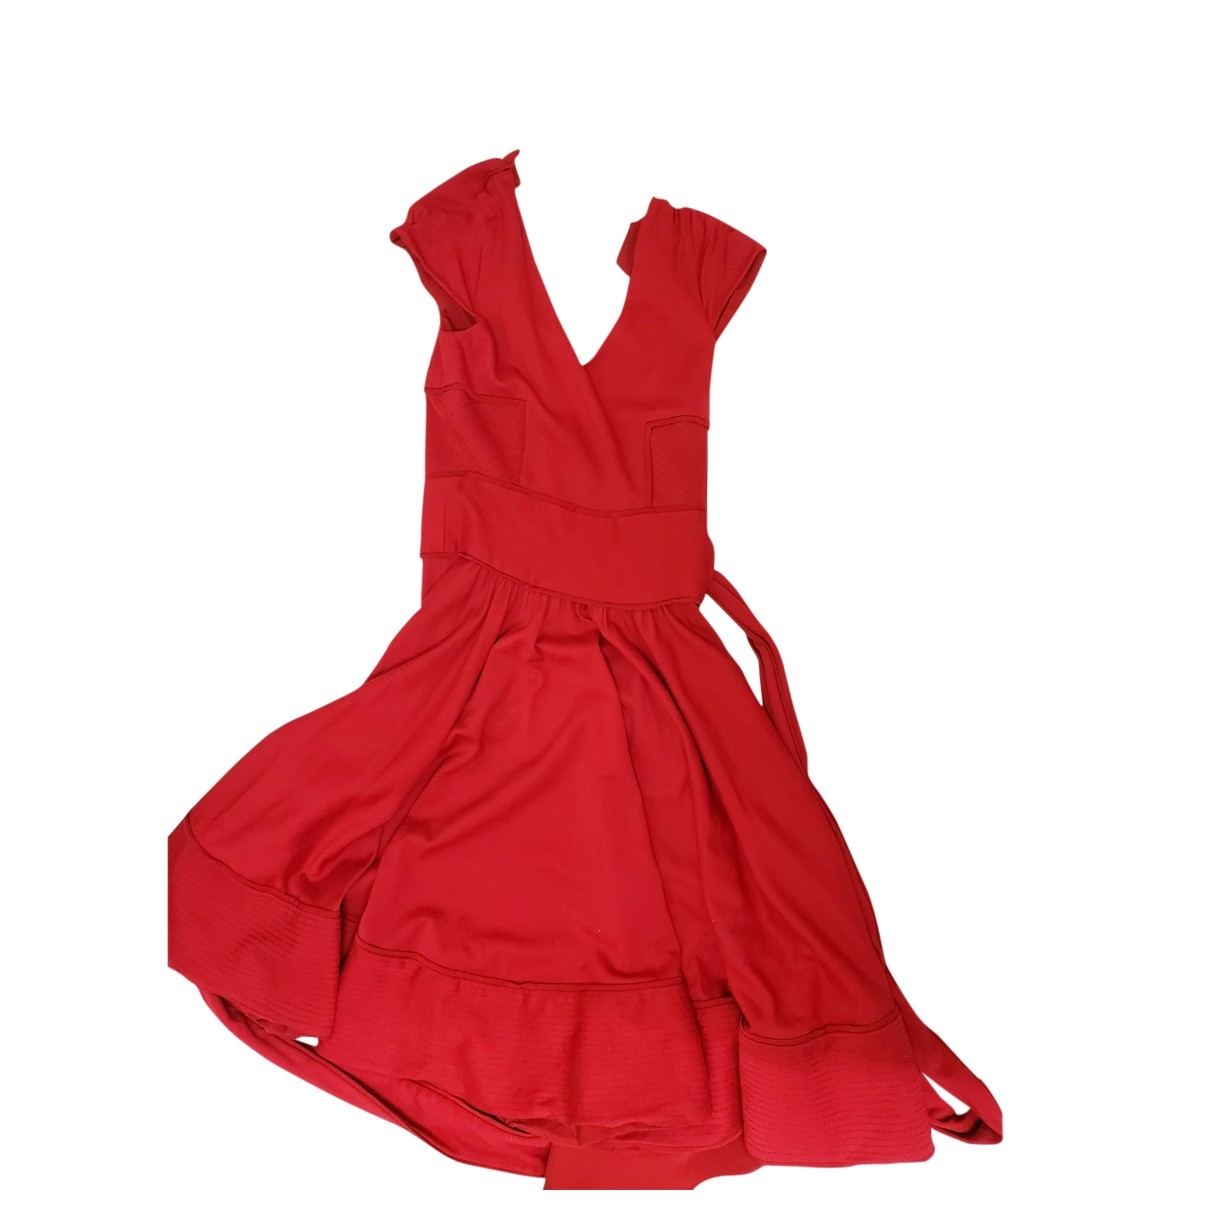 Diane Von Furstenberg \N Red Wool dress for Women 8 UK